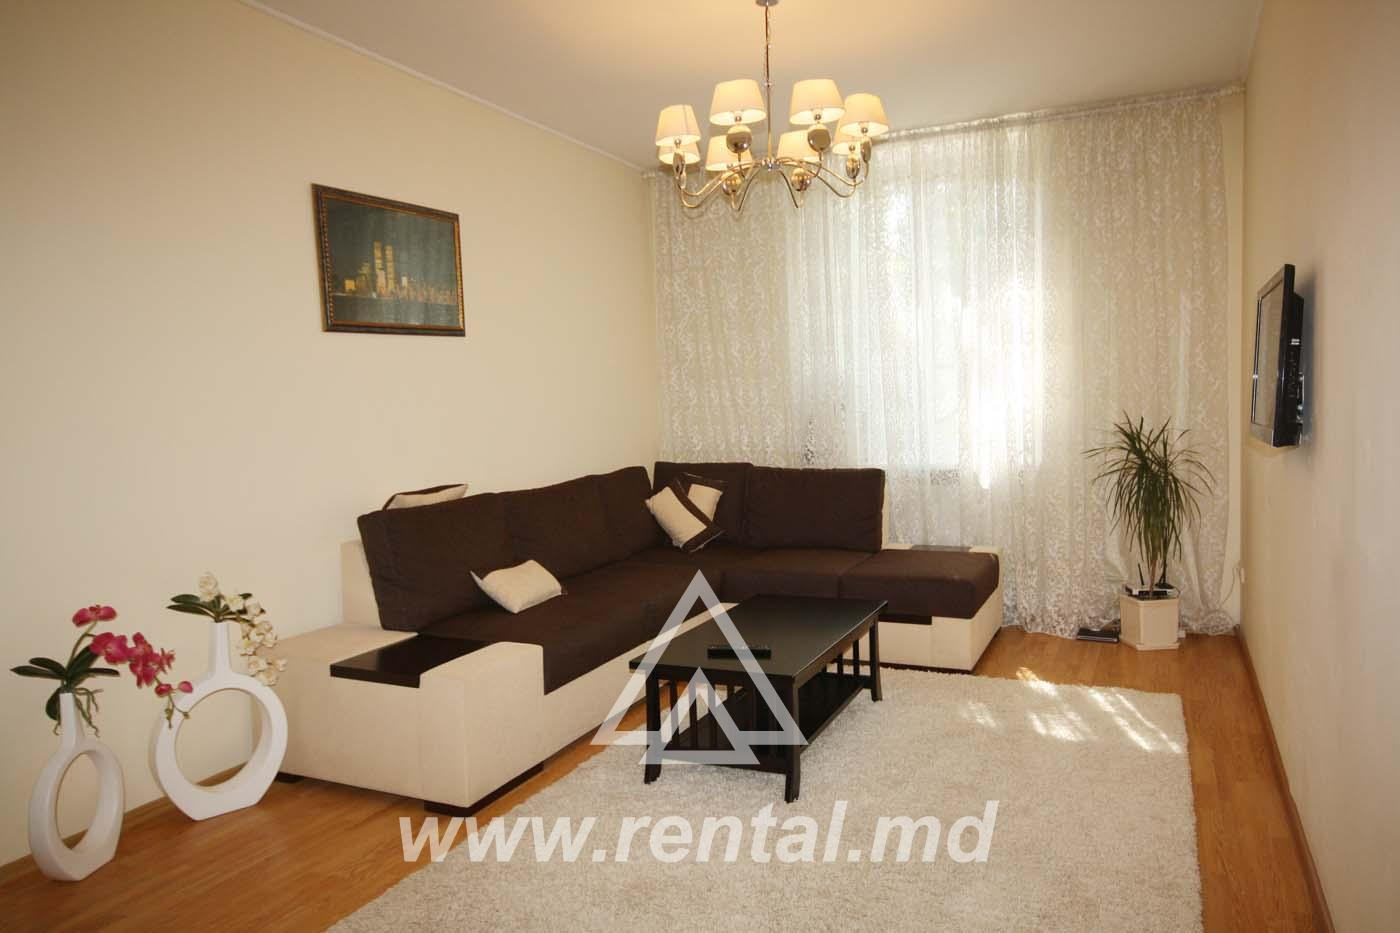 Rental apartment for short term rent